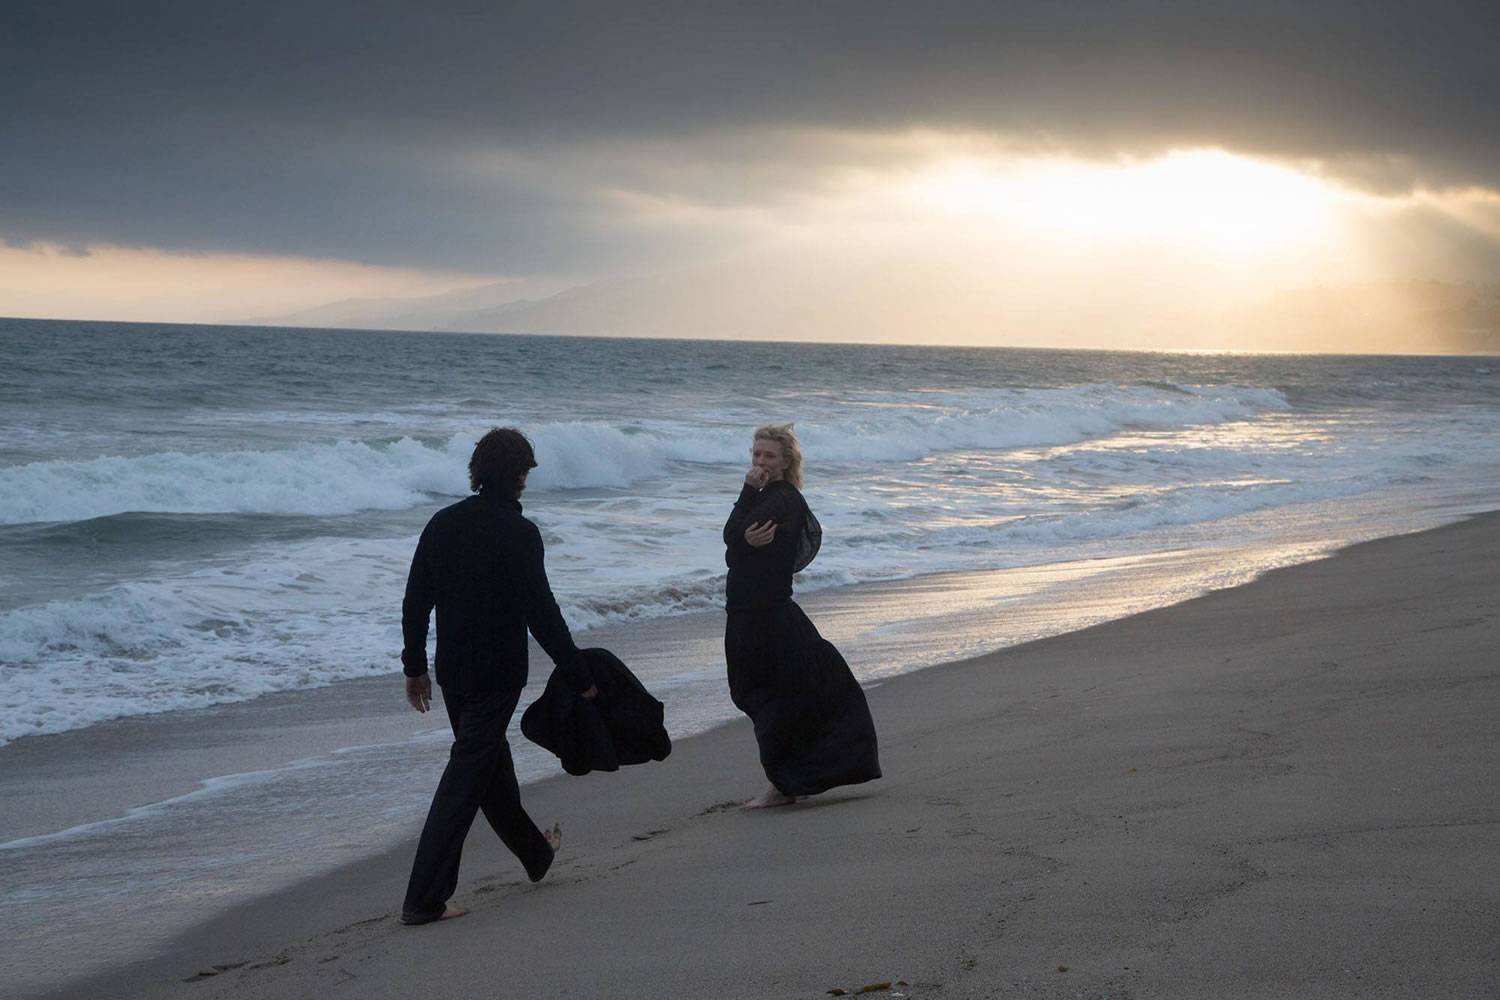 couple on the beach, knights of cups